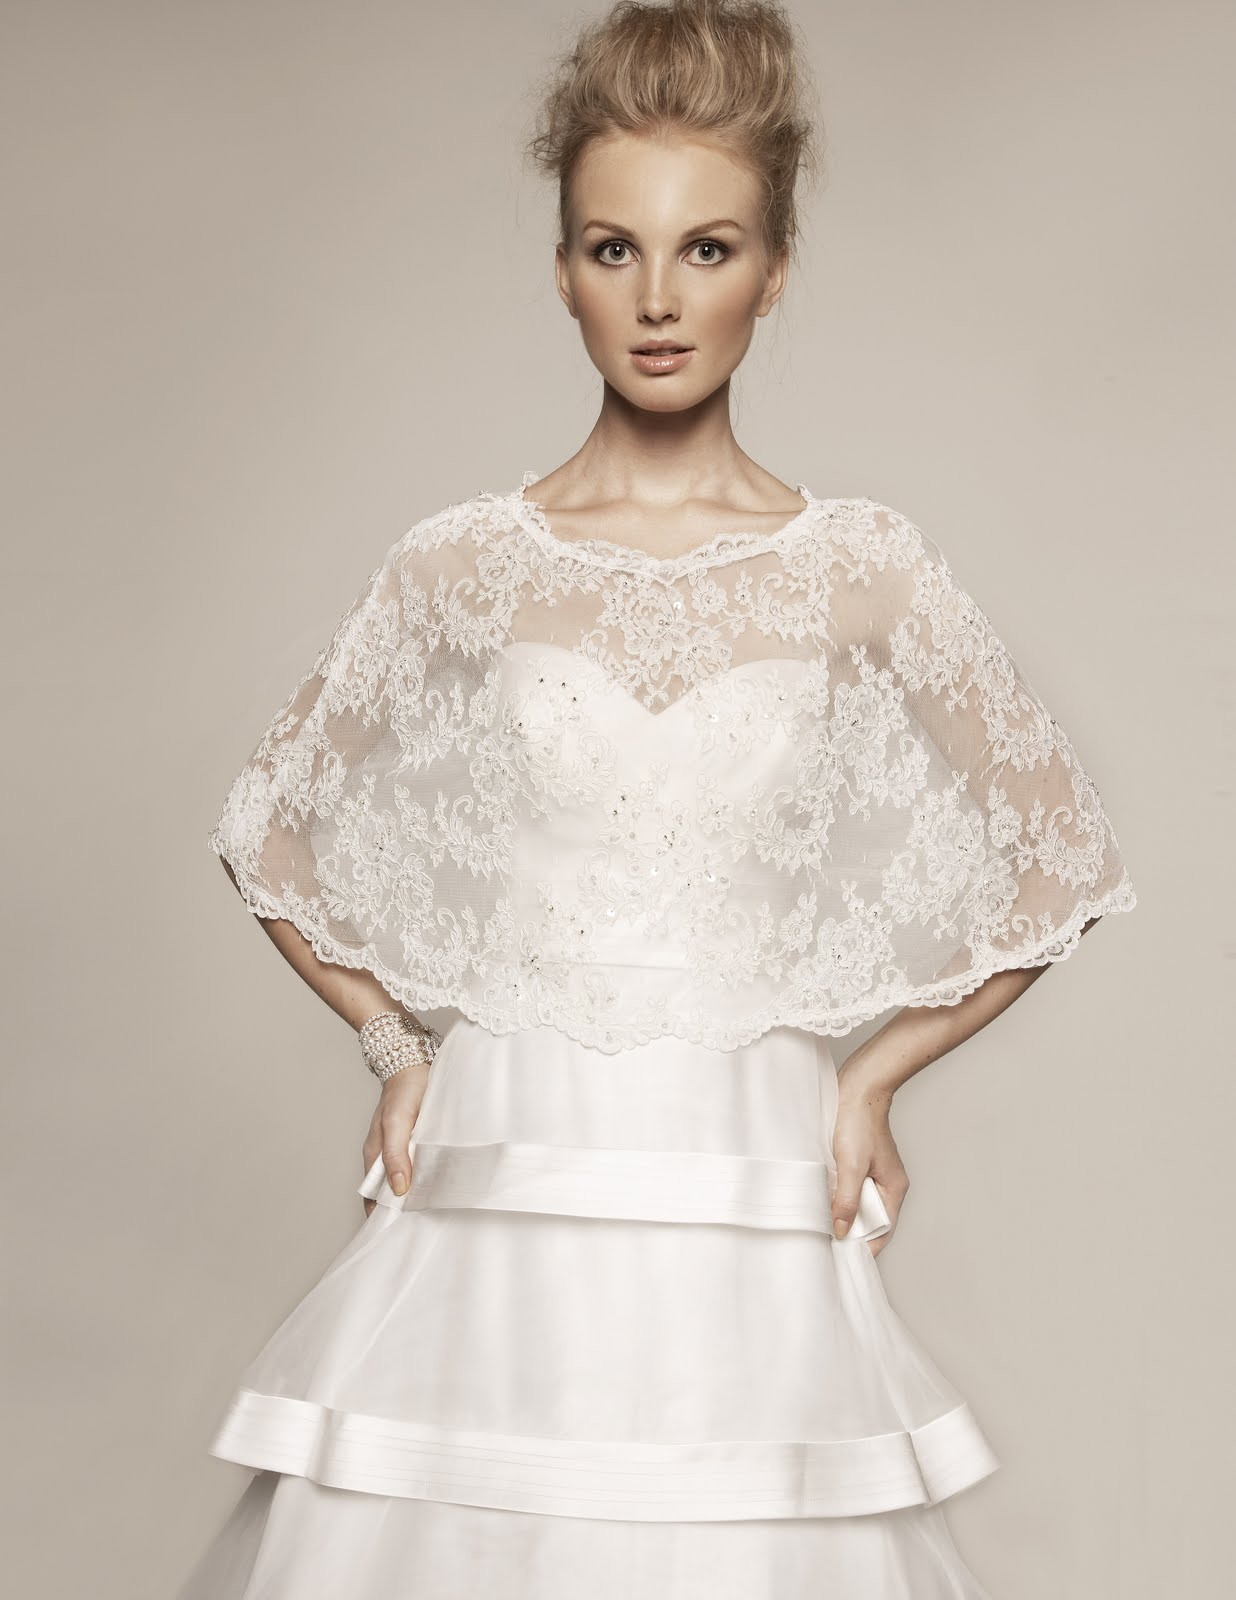 Destination Weddings Bridal Designer Offers New Options For The Modest Bride